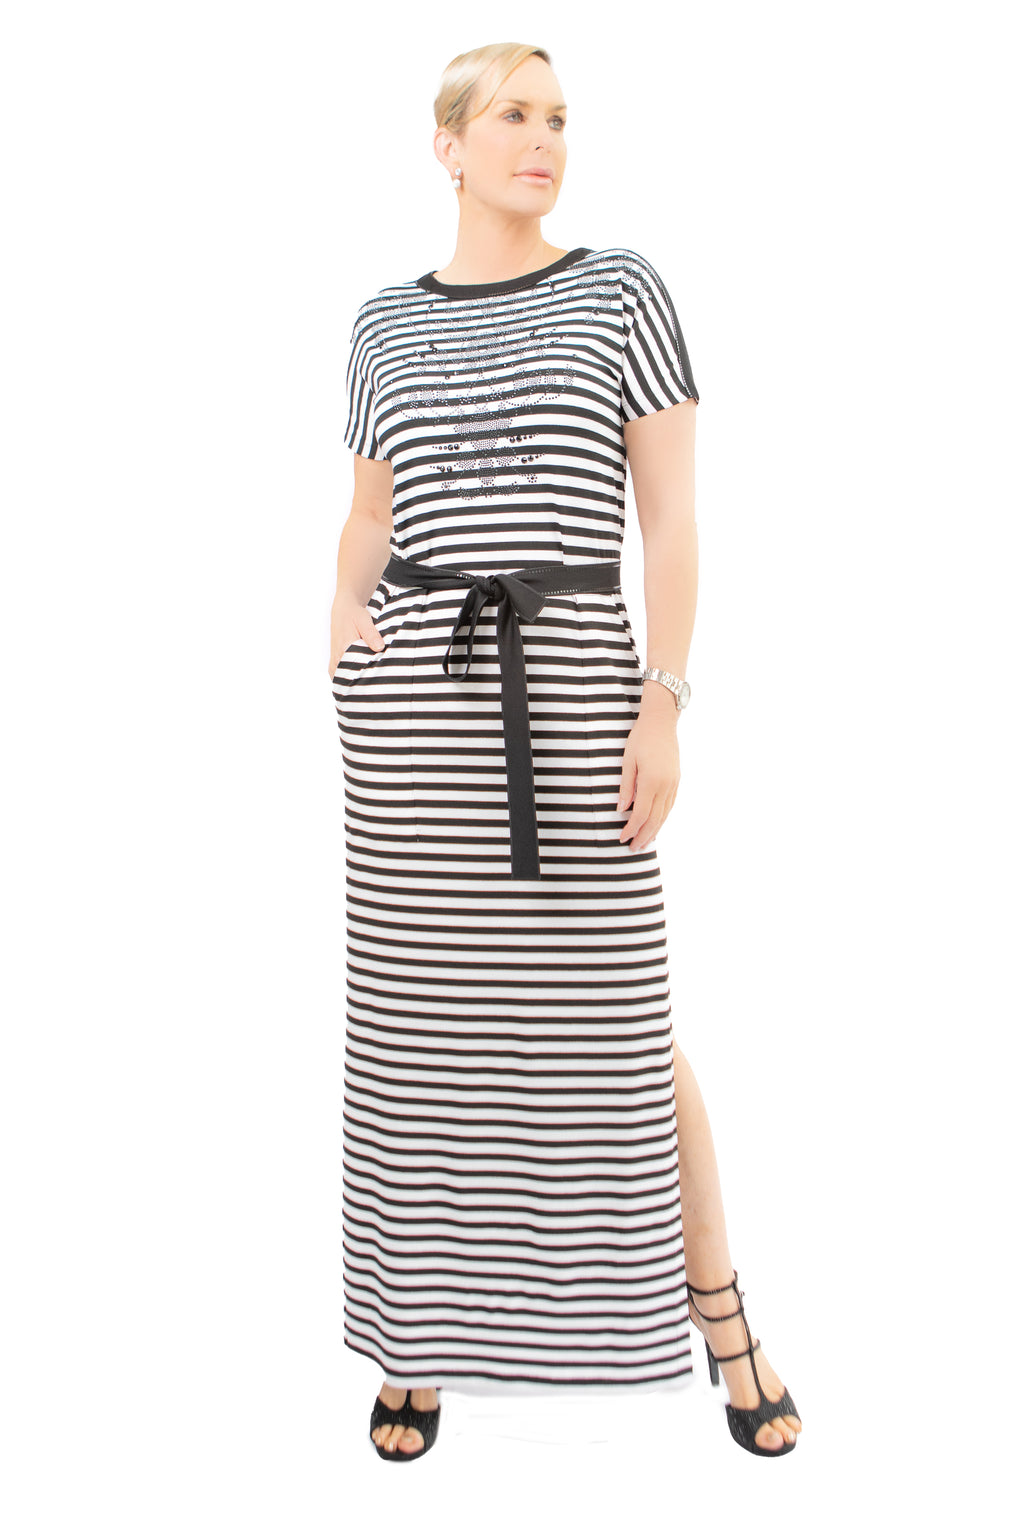 Paisley Stripe Patio Dress with Pocket - W1500805